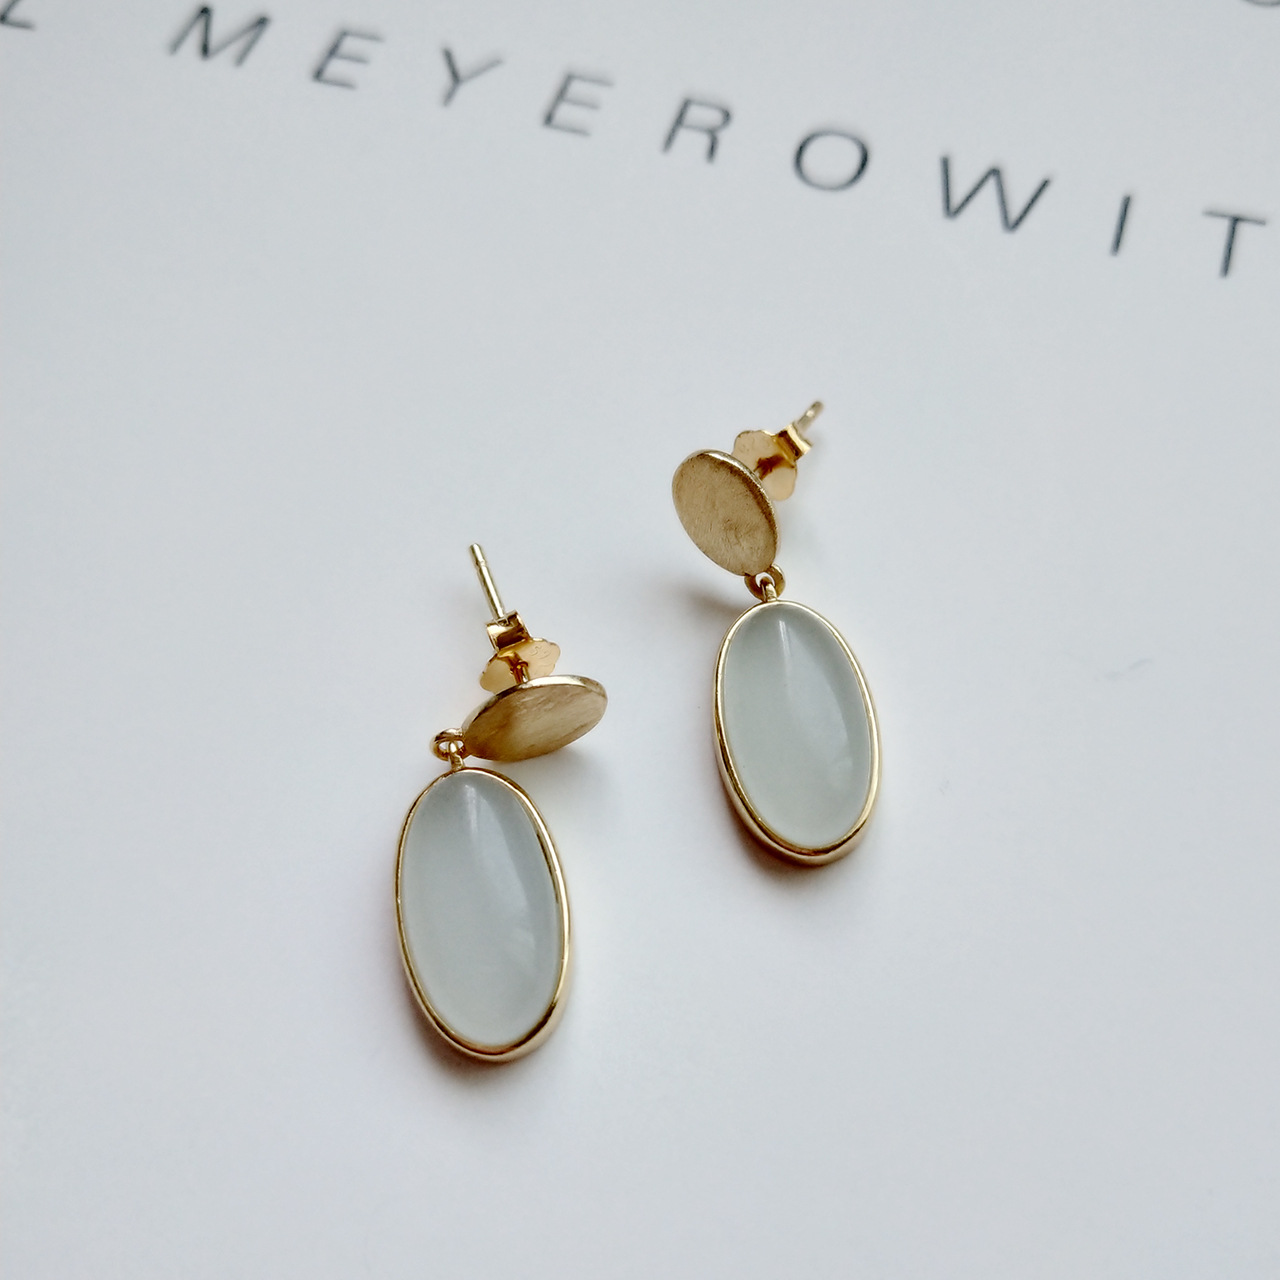 Korea Real Silver overall 925 sterling silver earrings shallow blue stones stud earrings gold Color wire